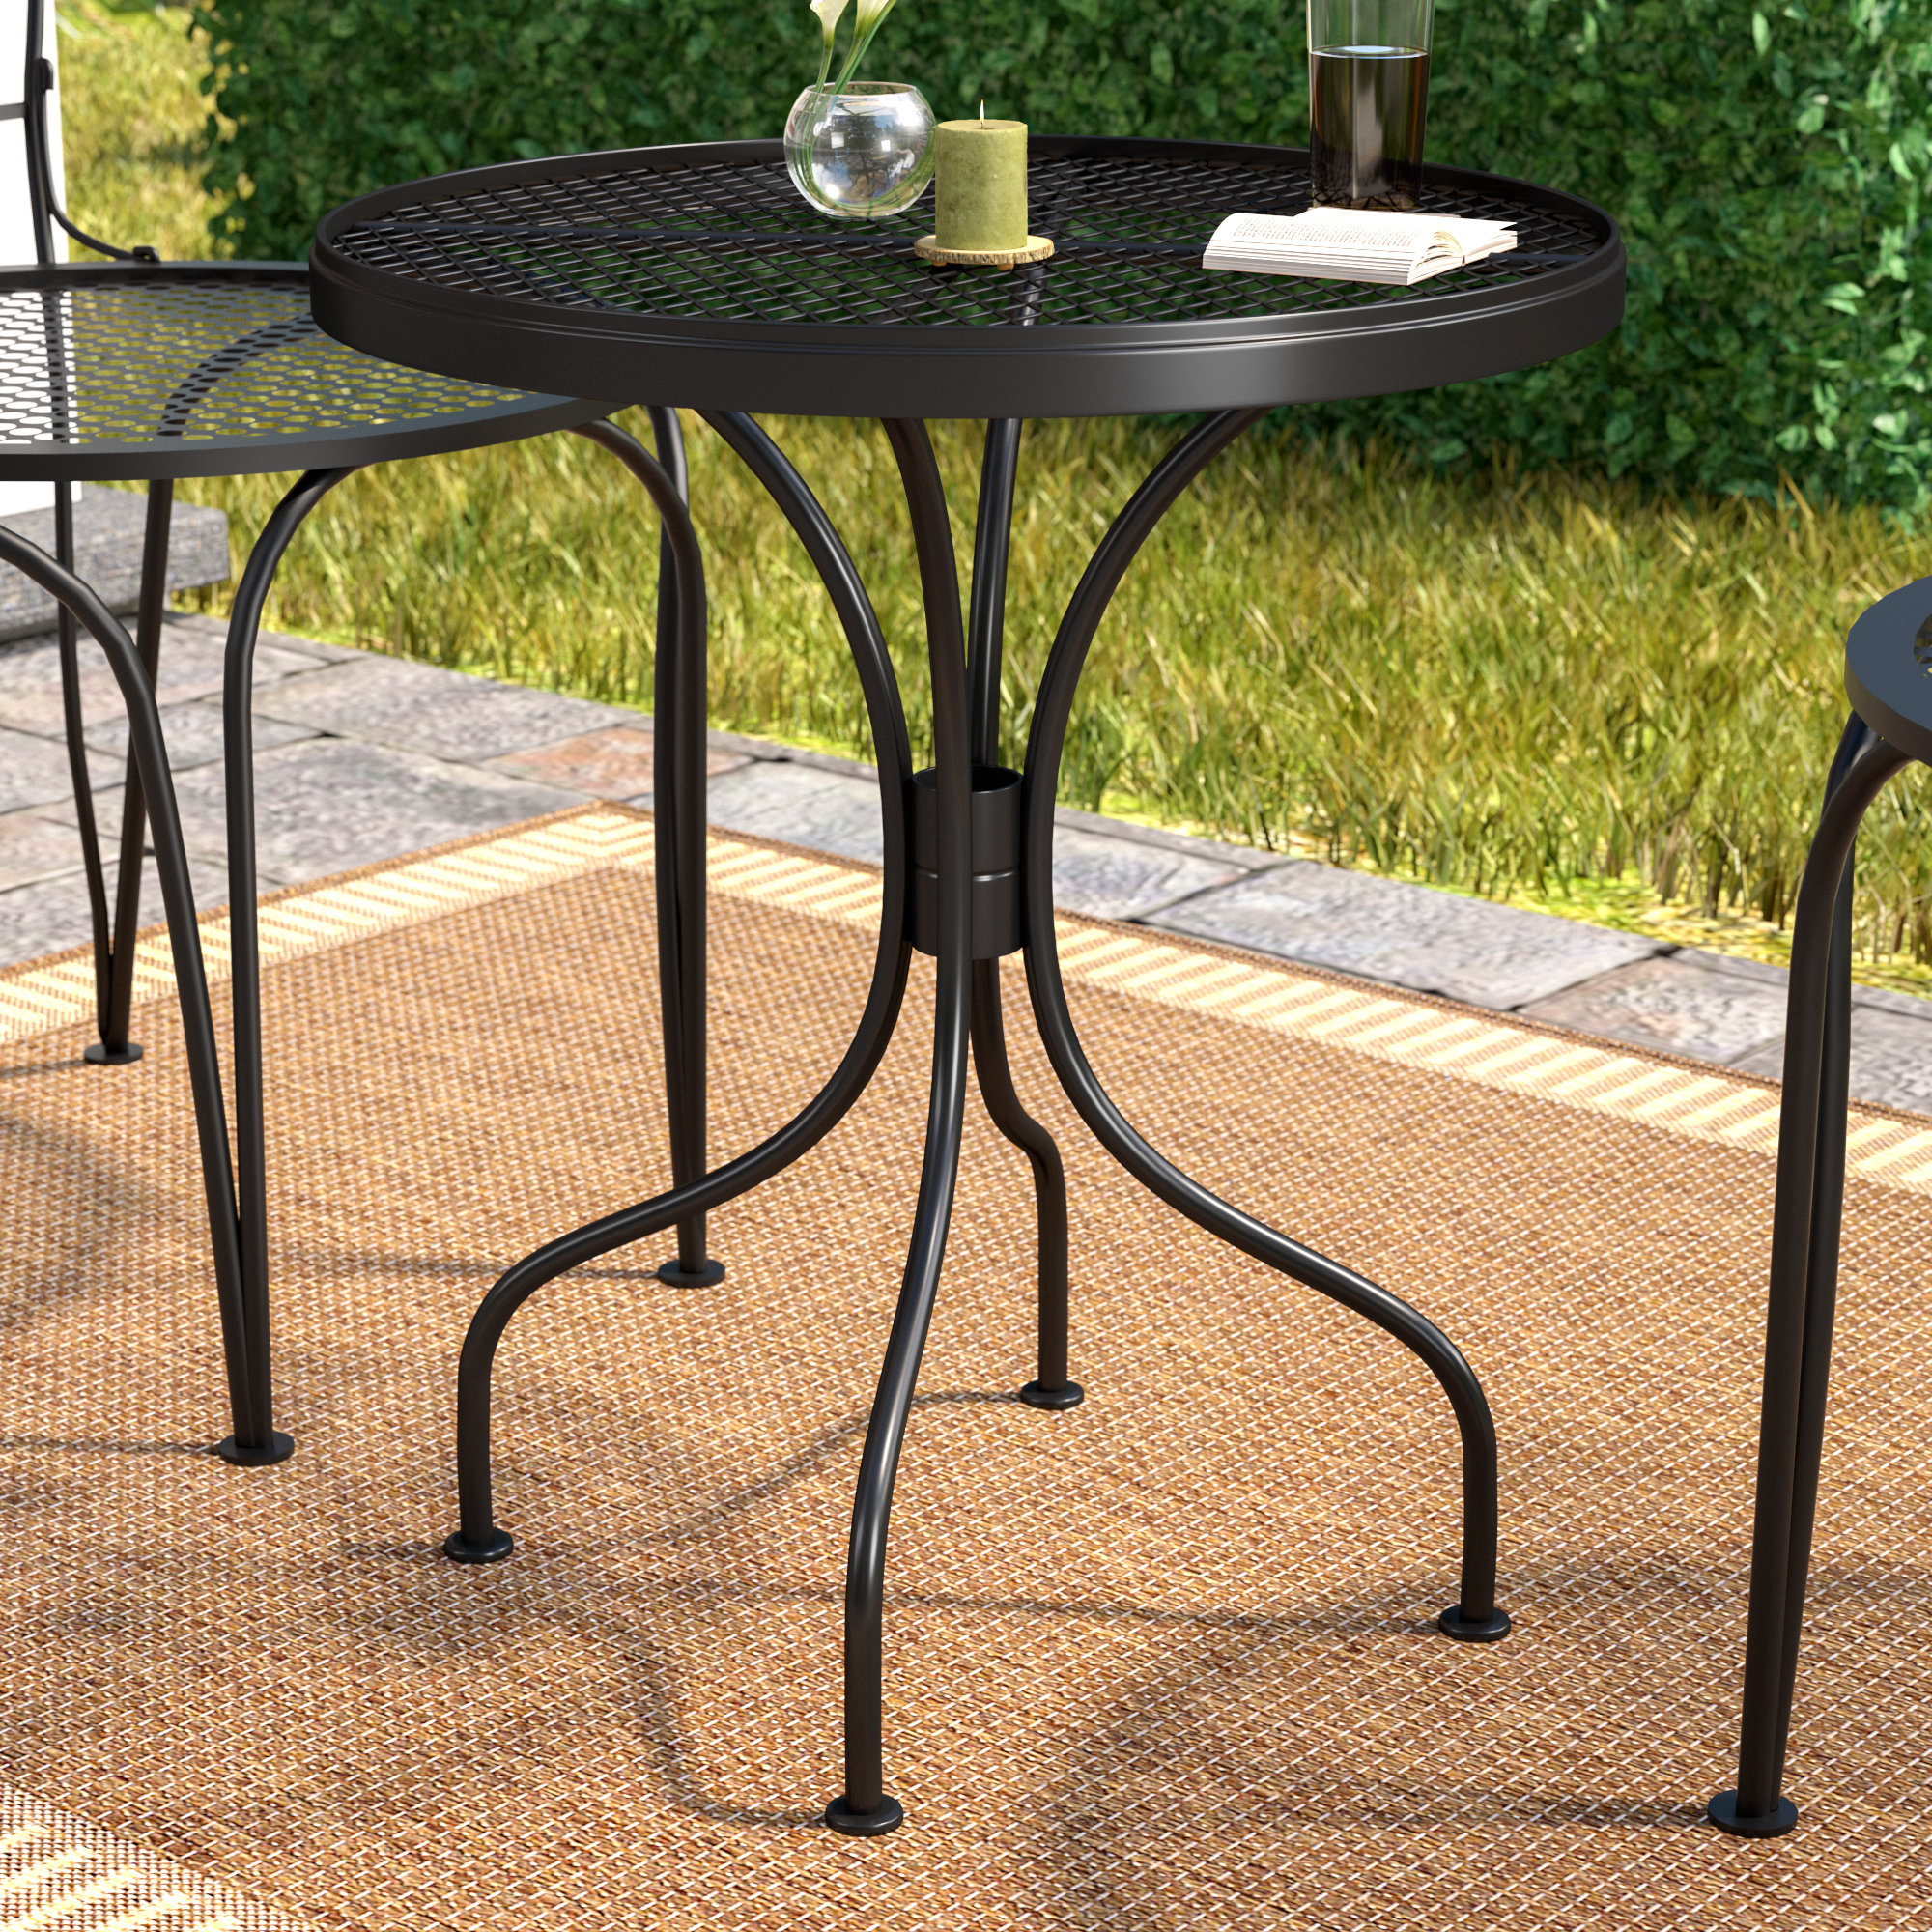 charlton home bissette wrought iron side table reviews yellow outdoor accent wood one drawer threshold art deco lamps farmhouse and chairs oval glass top clearance copper drum end